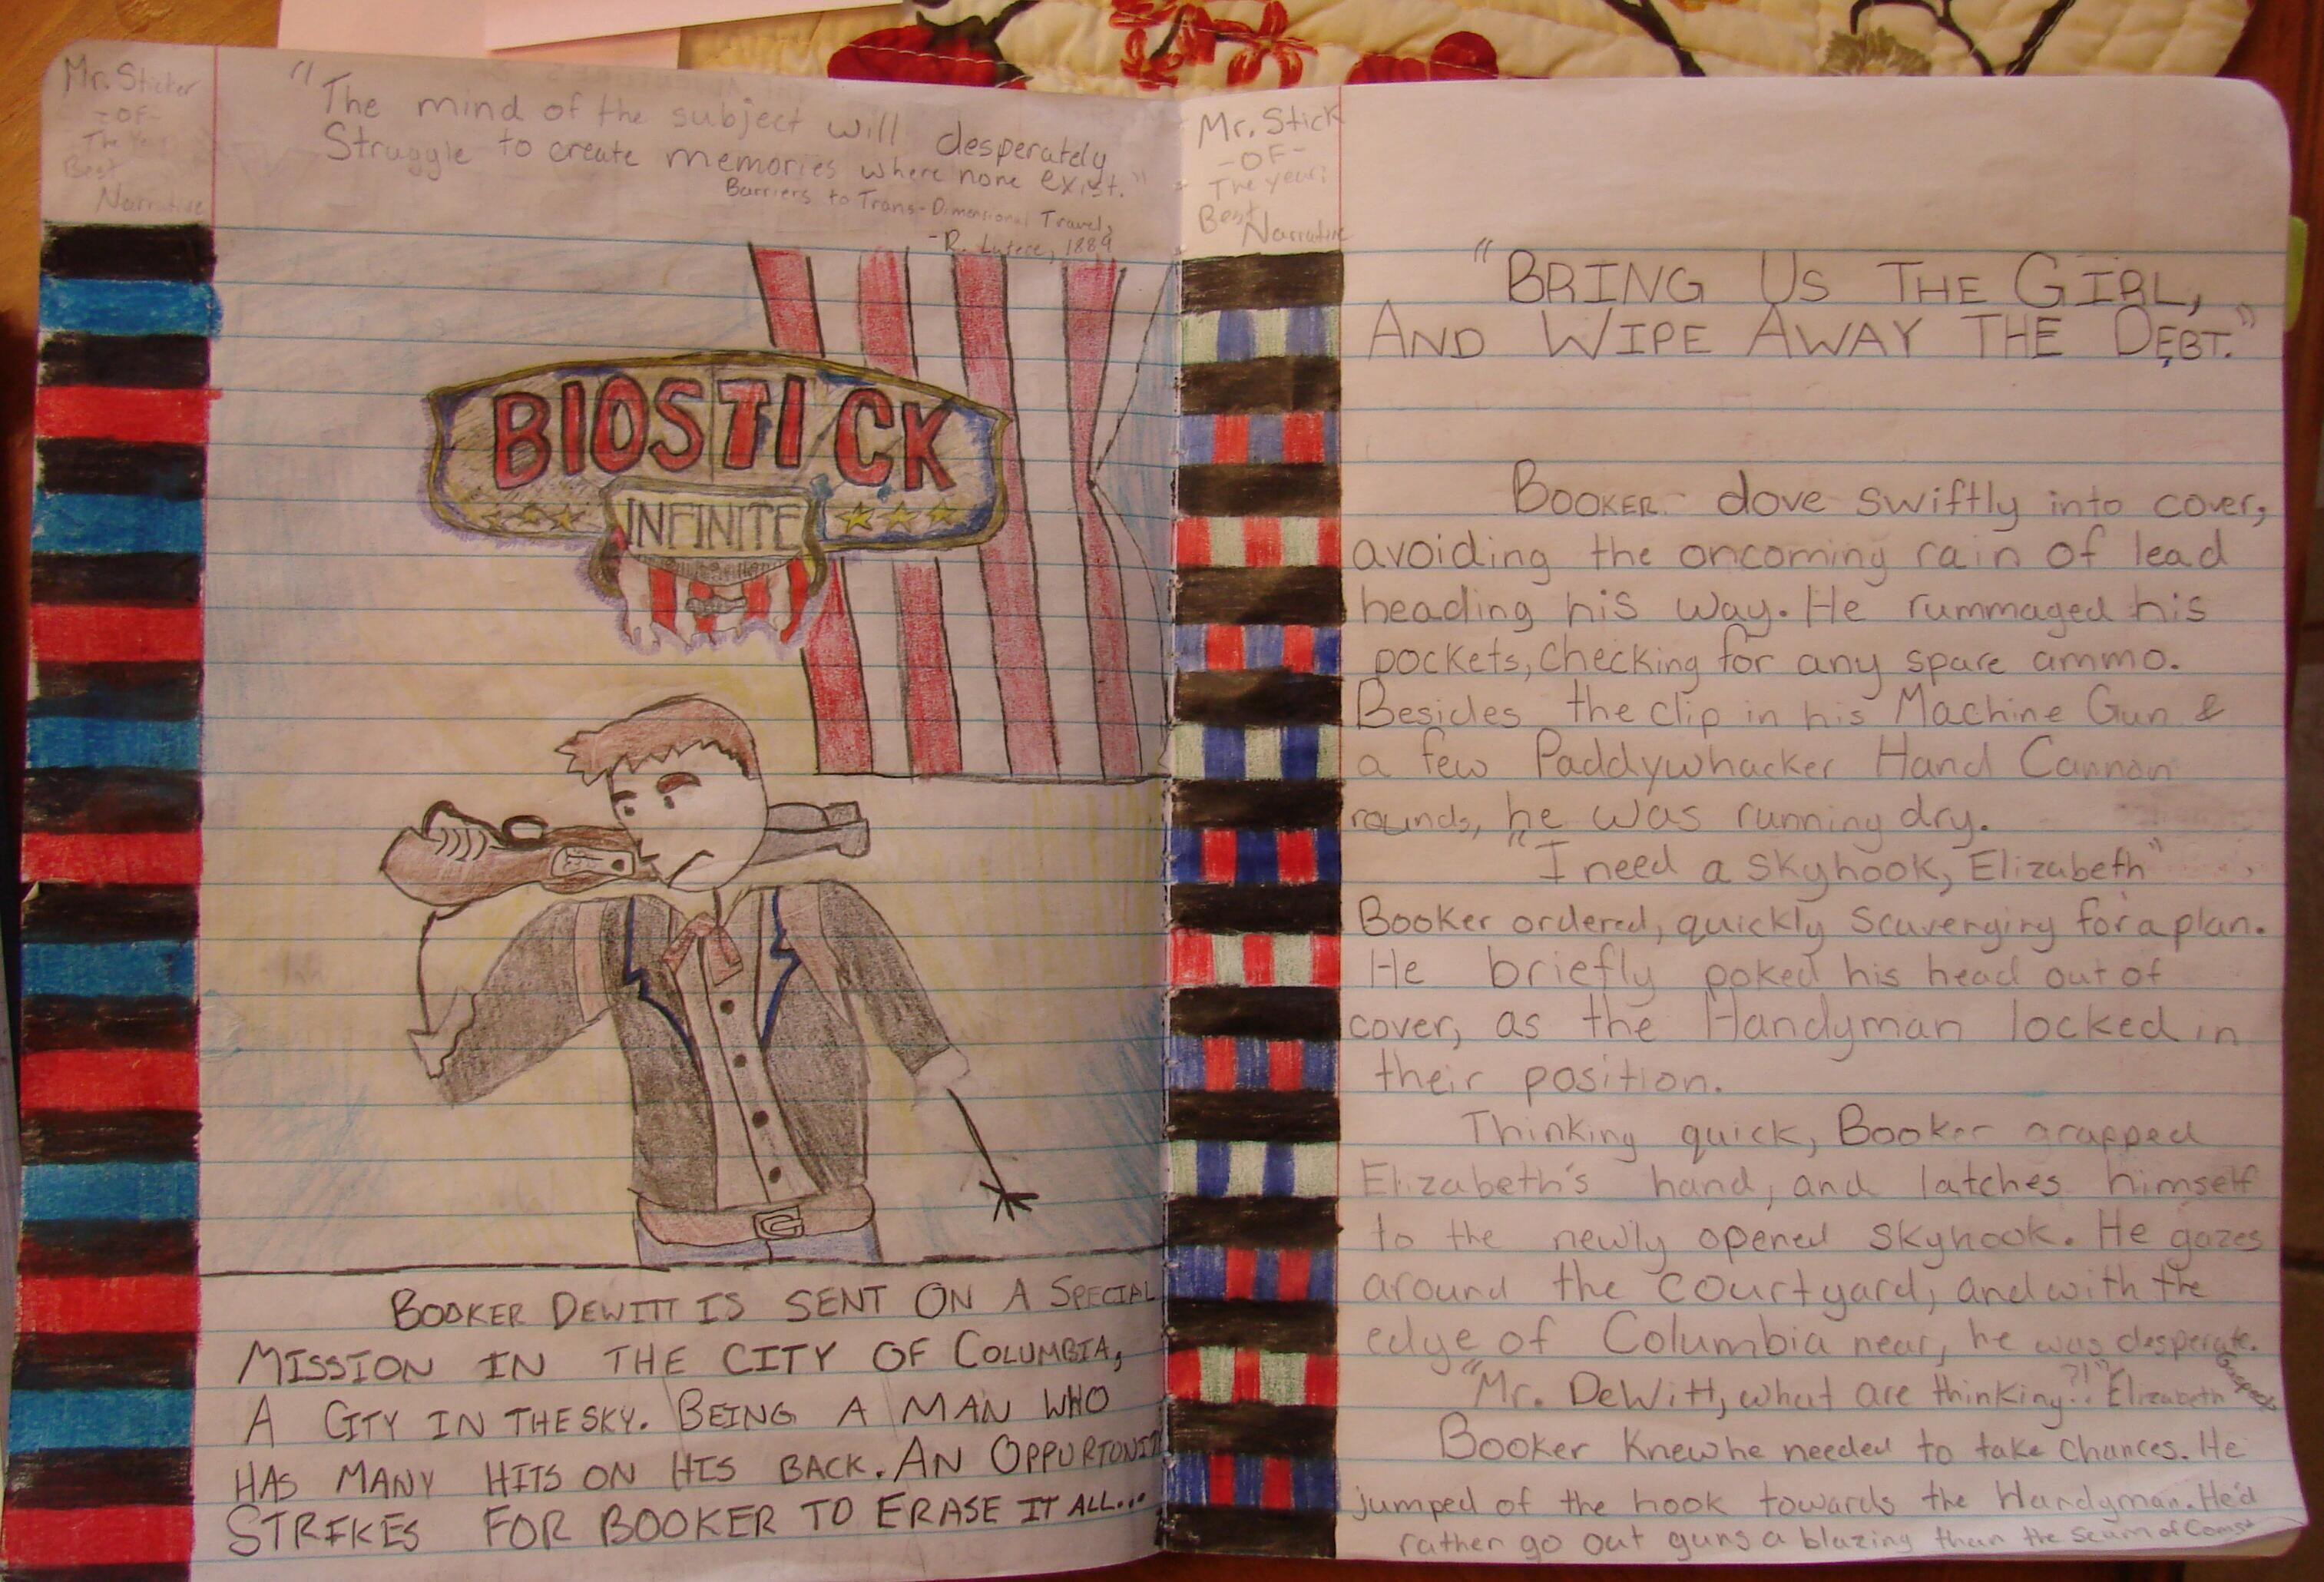 Cyrus wrote a narrative, inspired by the video game we both played during the 2013 school year: Bioshock: Infinite.  I love that his story became Biostick.  I'll will miss this 8th grader's sense of humor.